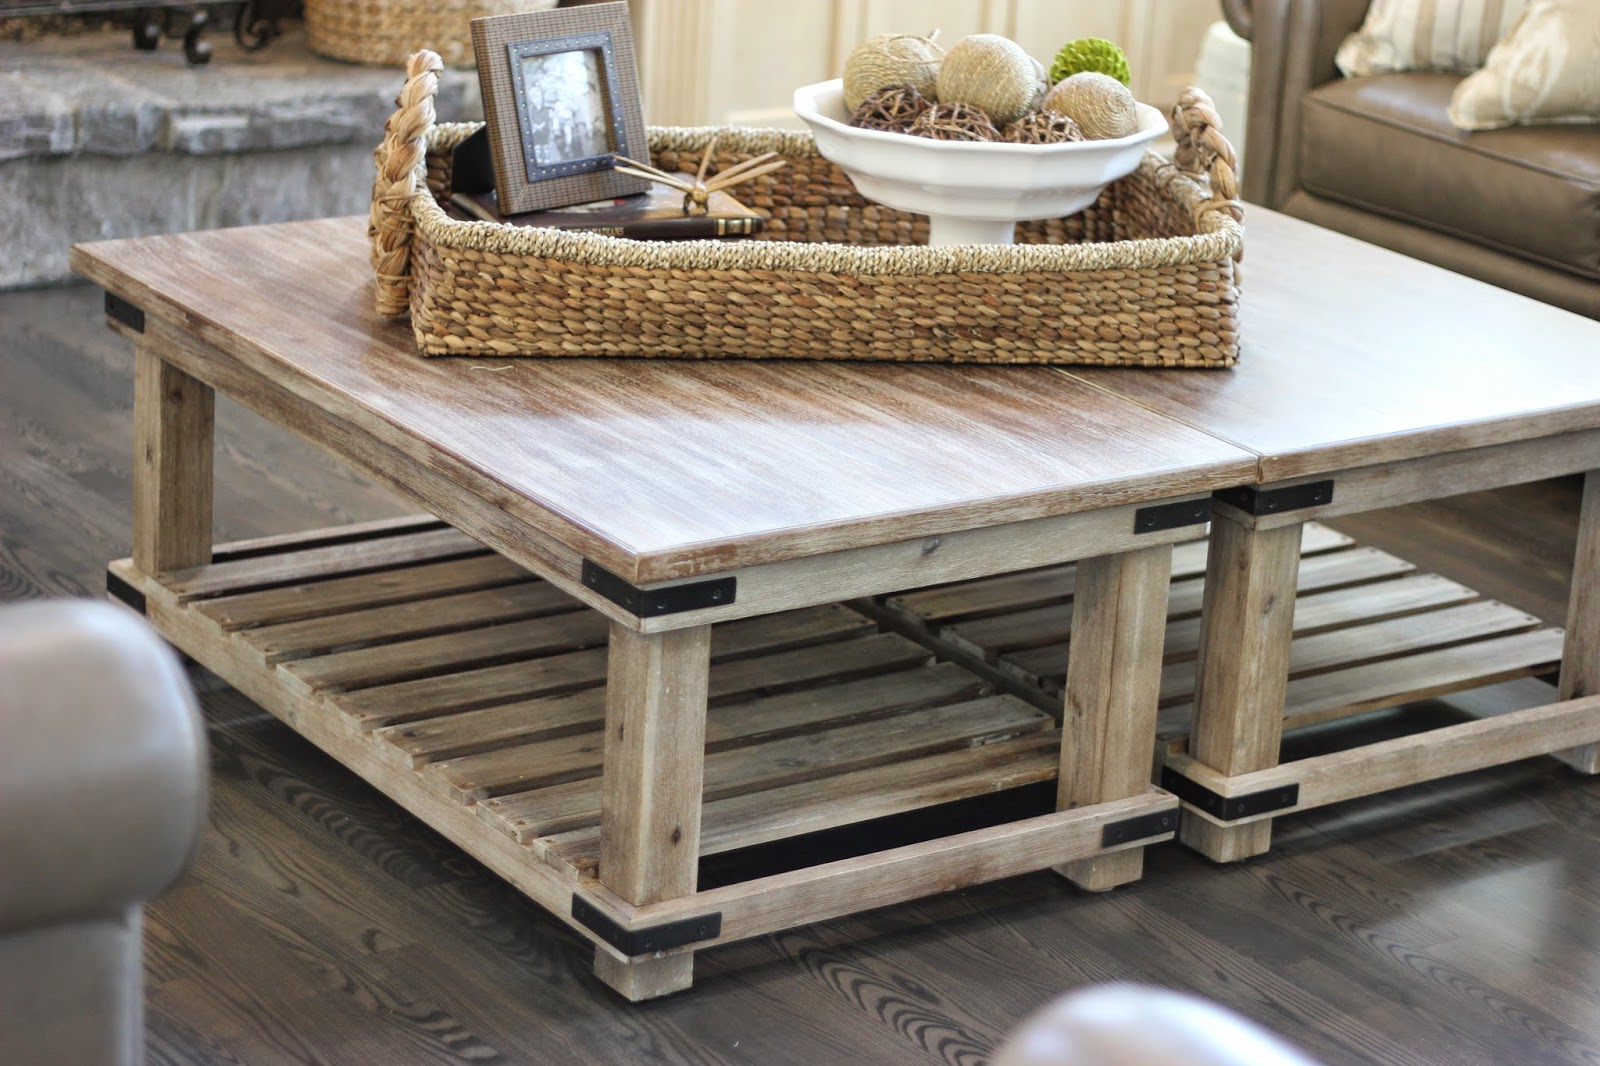 A creative option when you need a large coffee table forever cottage Coffee table with wicker baskets